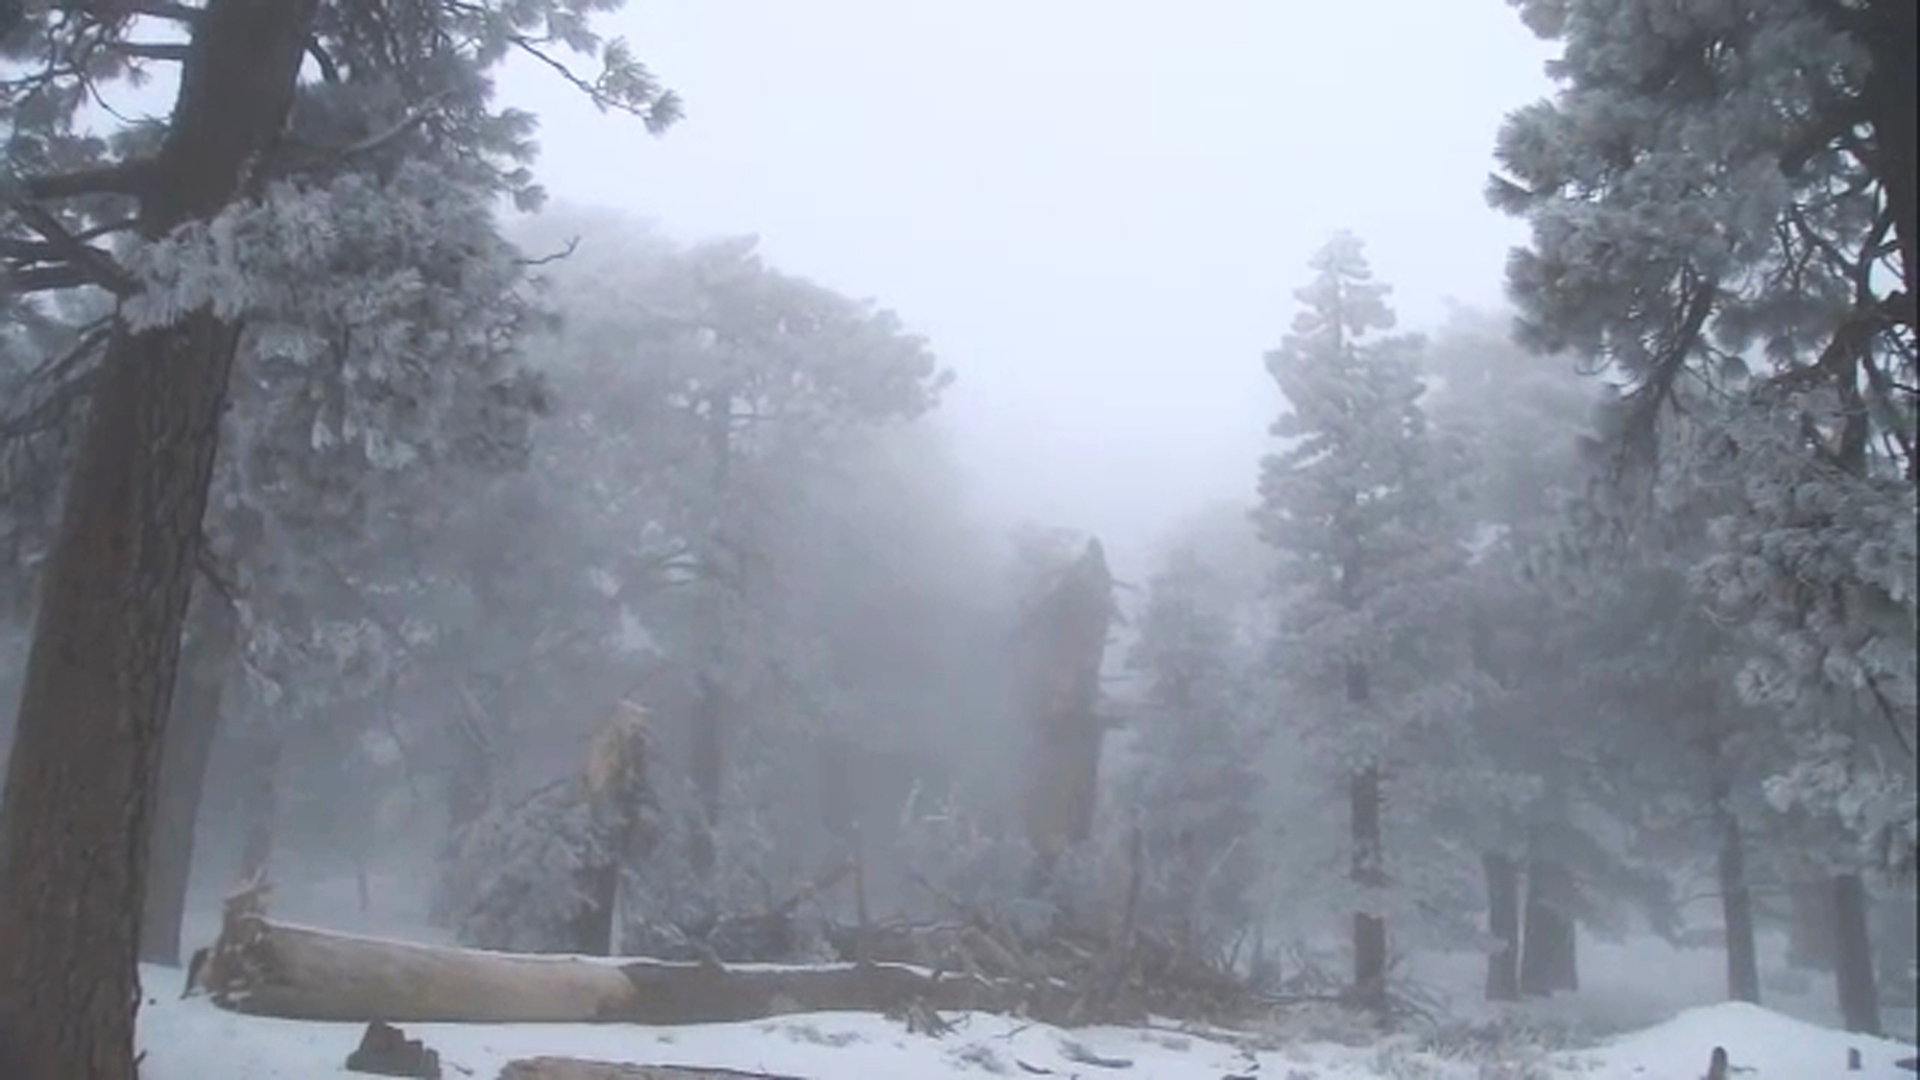 Fresh powder covers Wrightwood on Wednesday, Feb. 20, 2019.